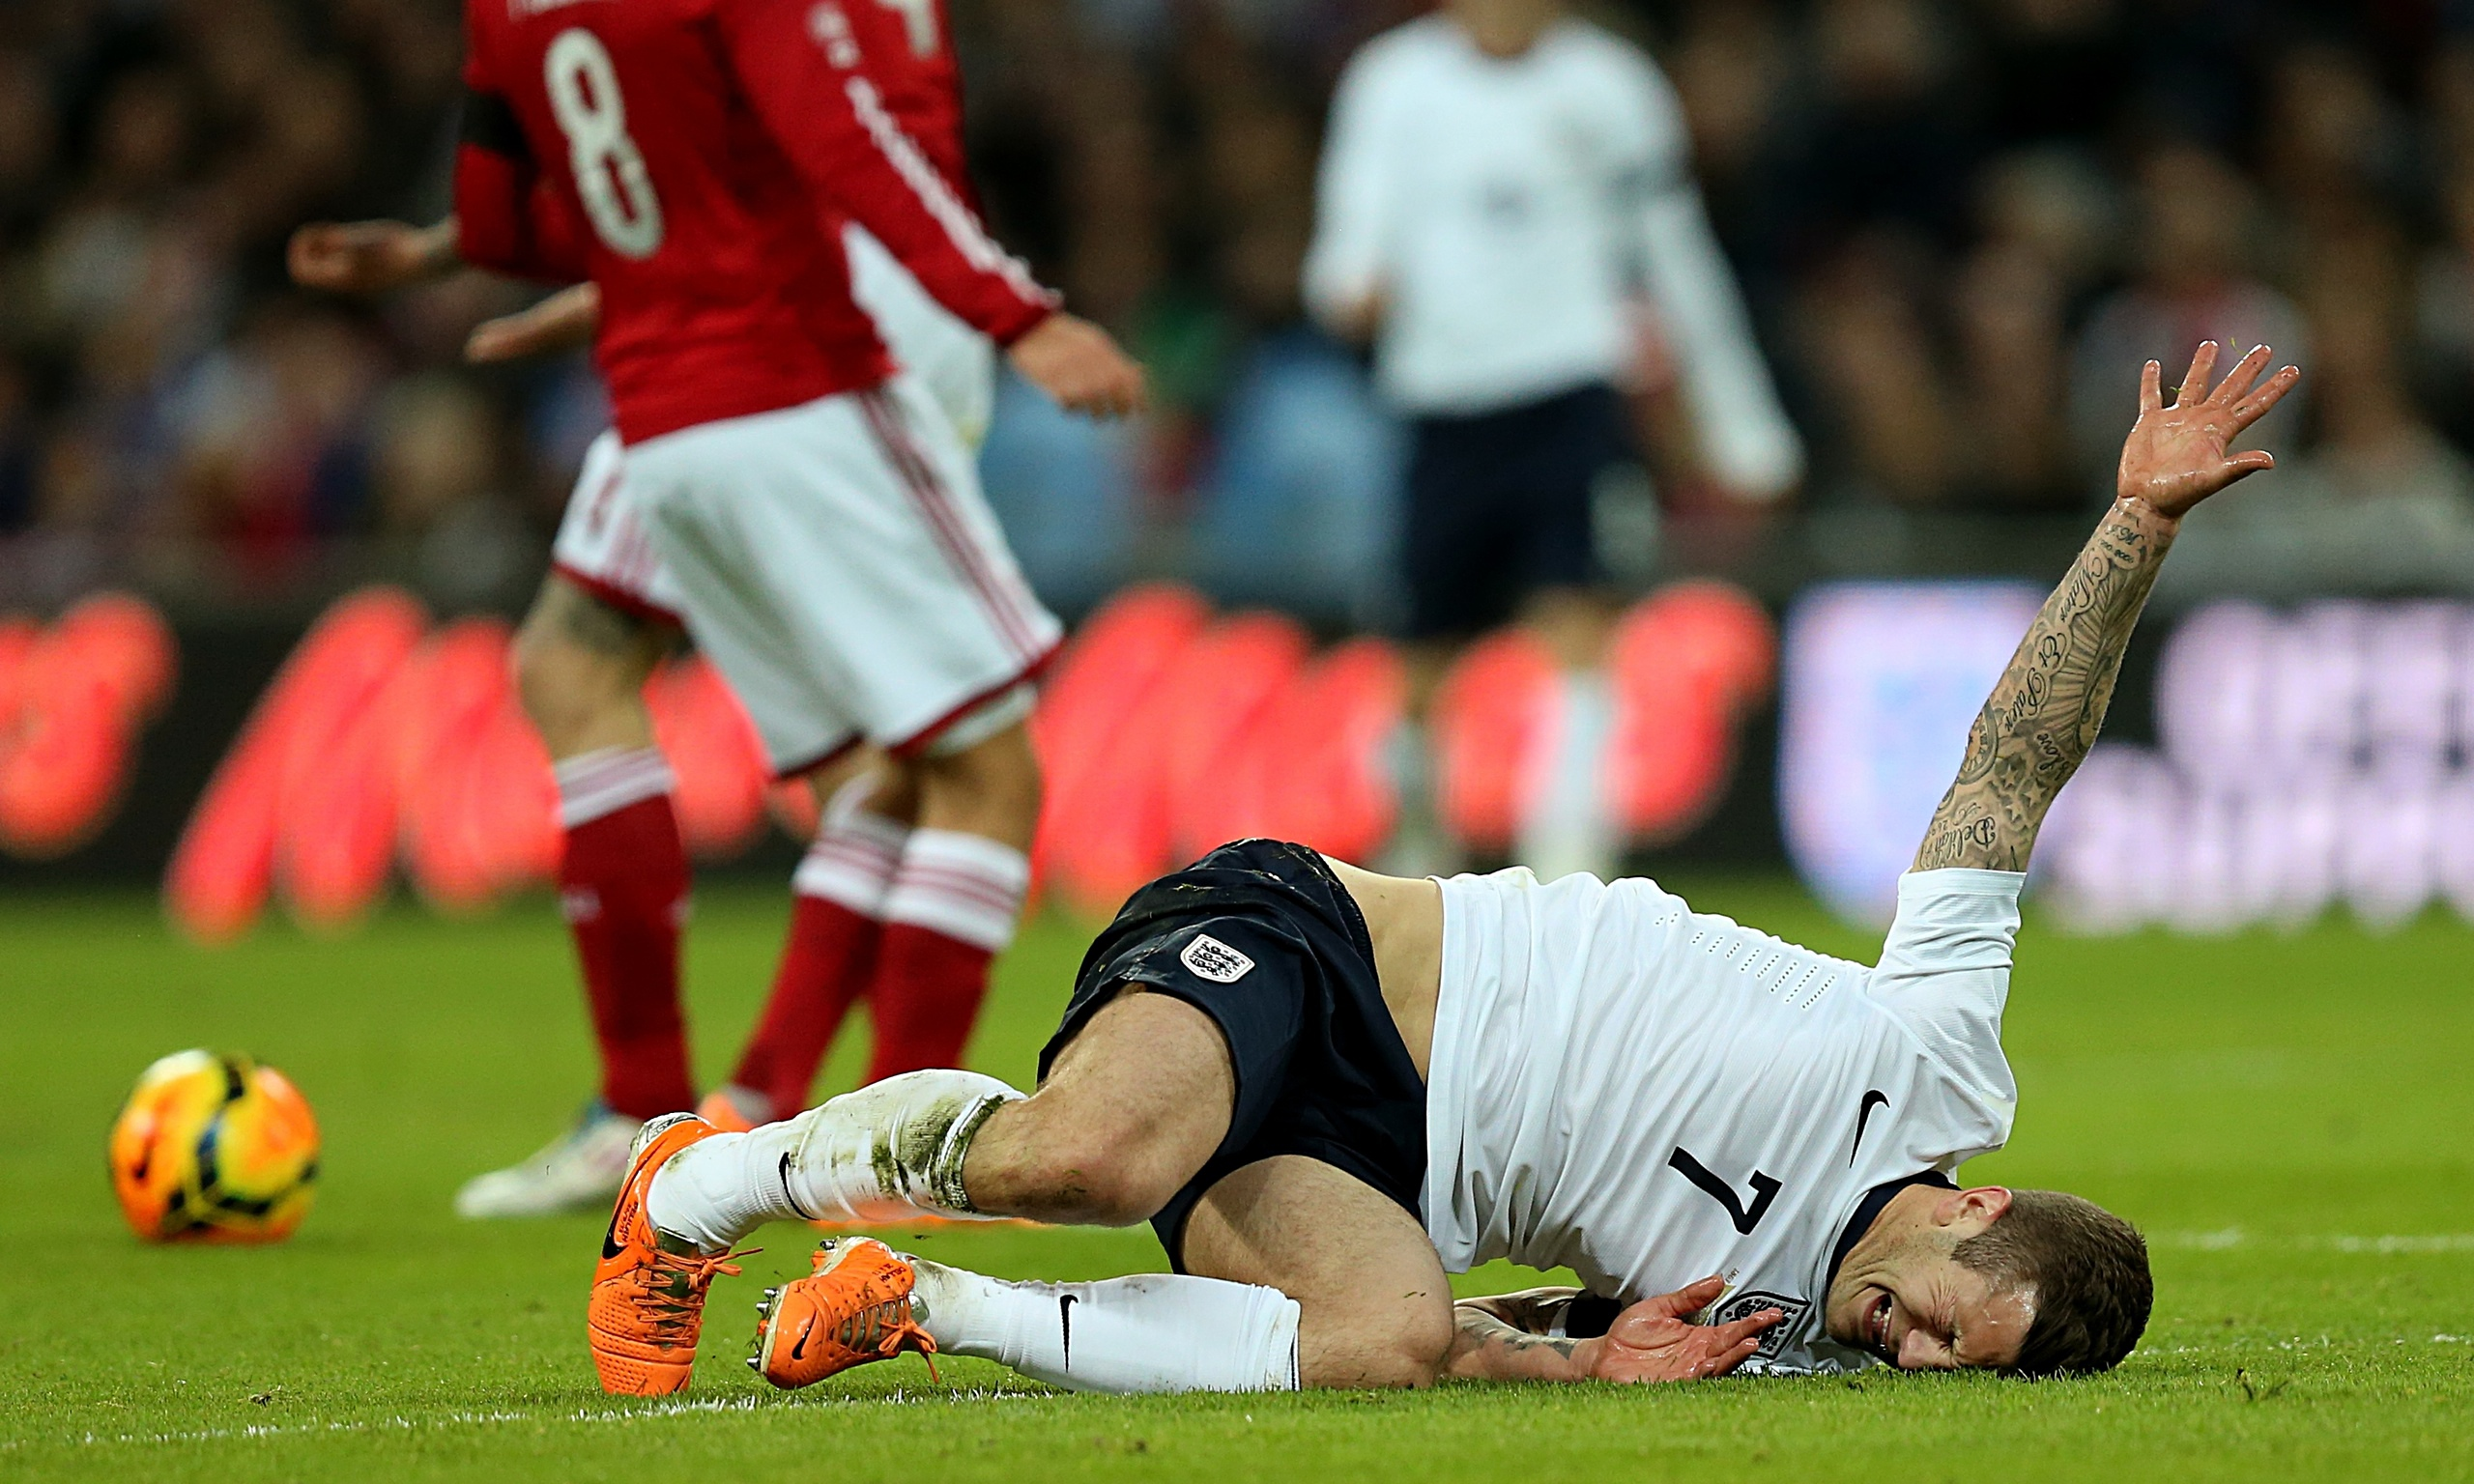 Jack Wilshere out for six weeks with hairline fracture of foot